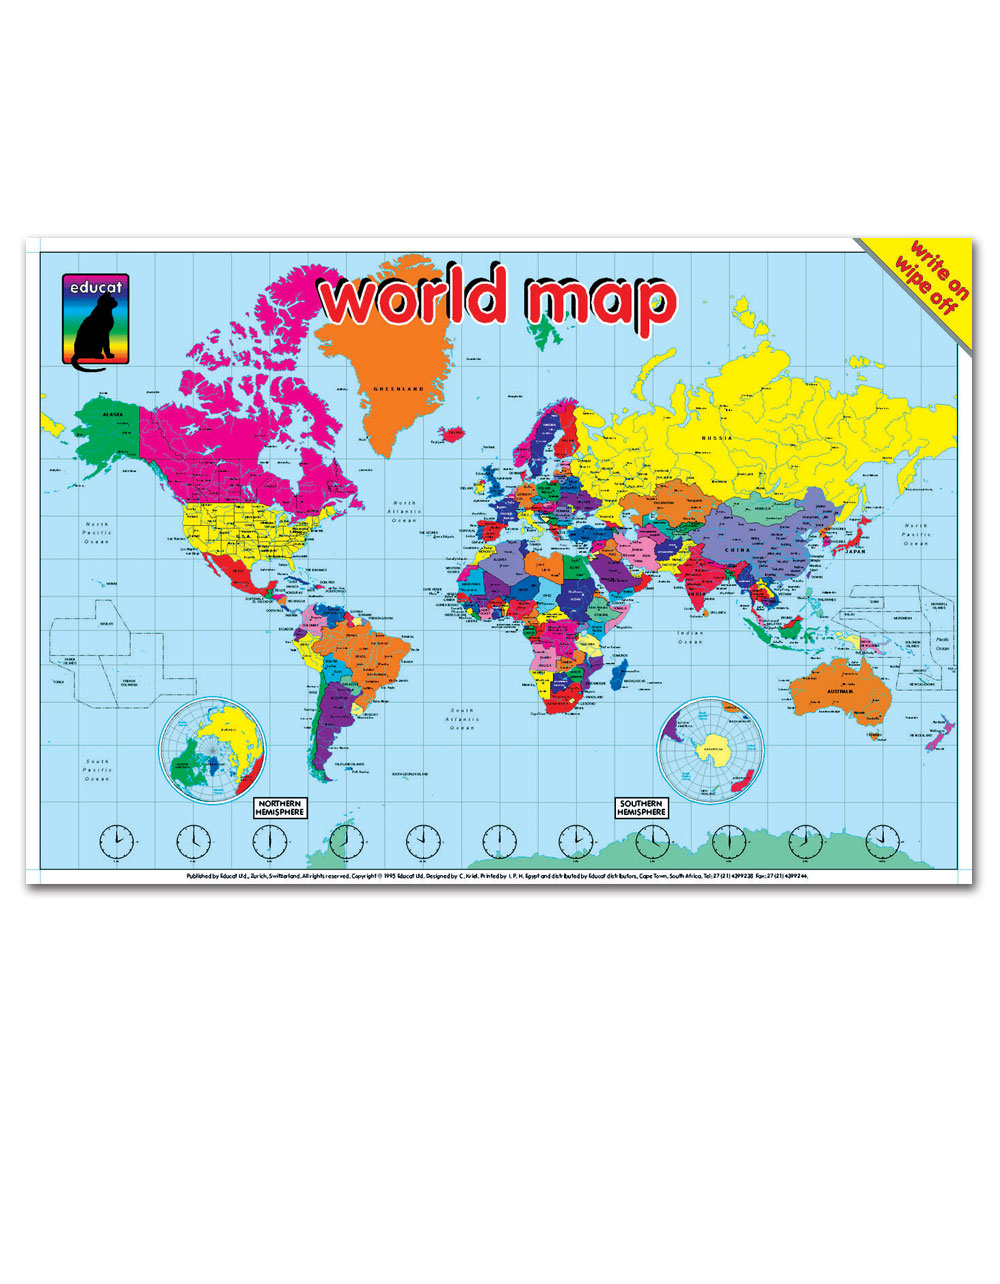 Silverleaf poster design 2 world map poster gumiabroncs Image collections